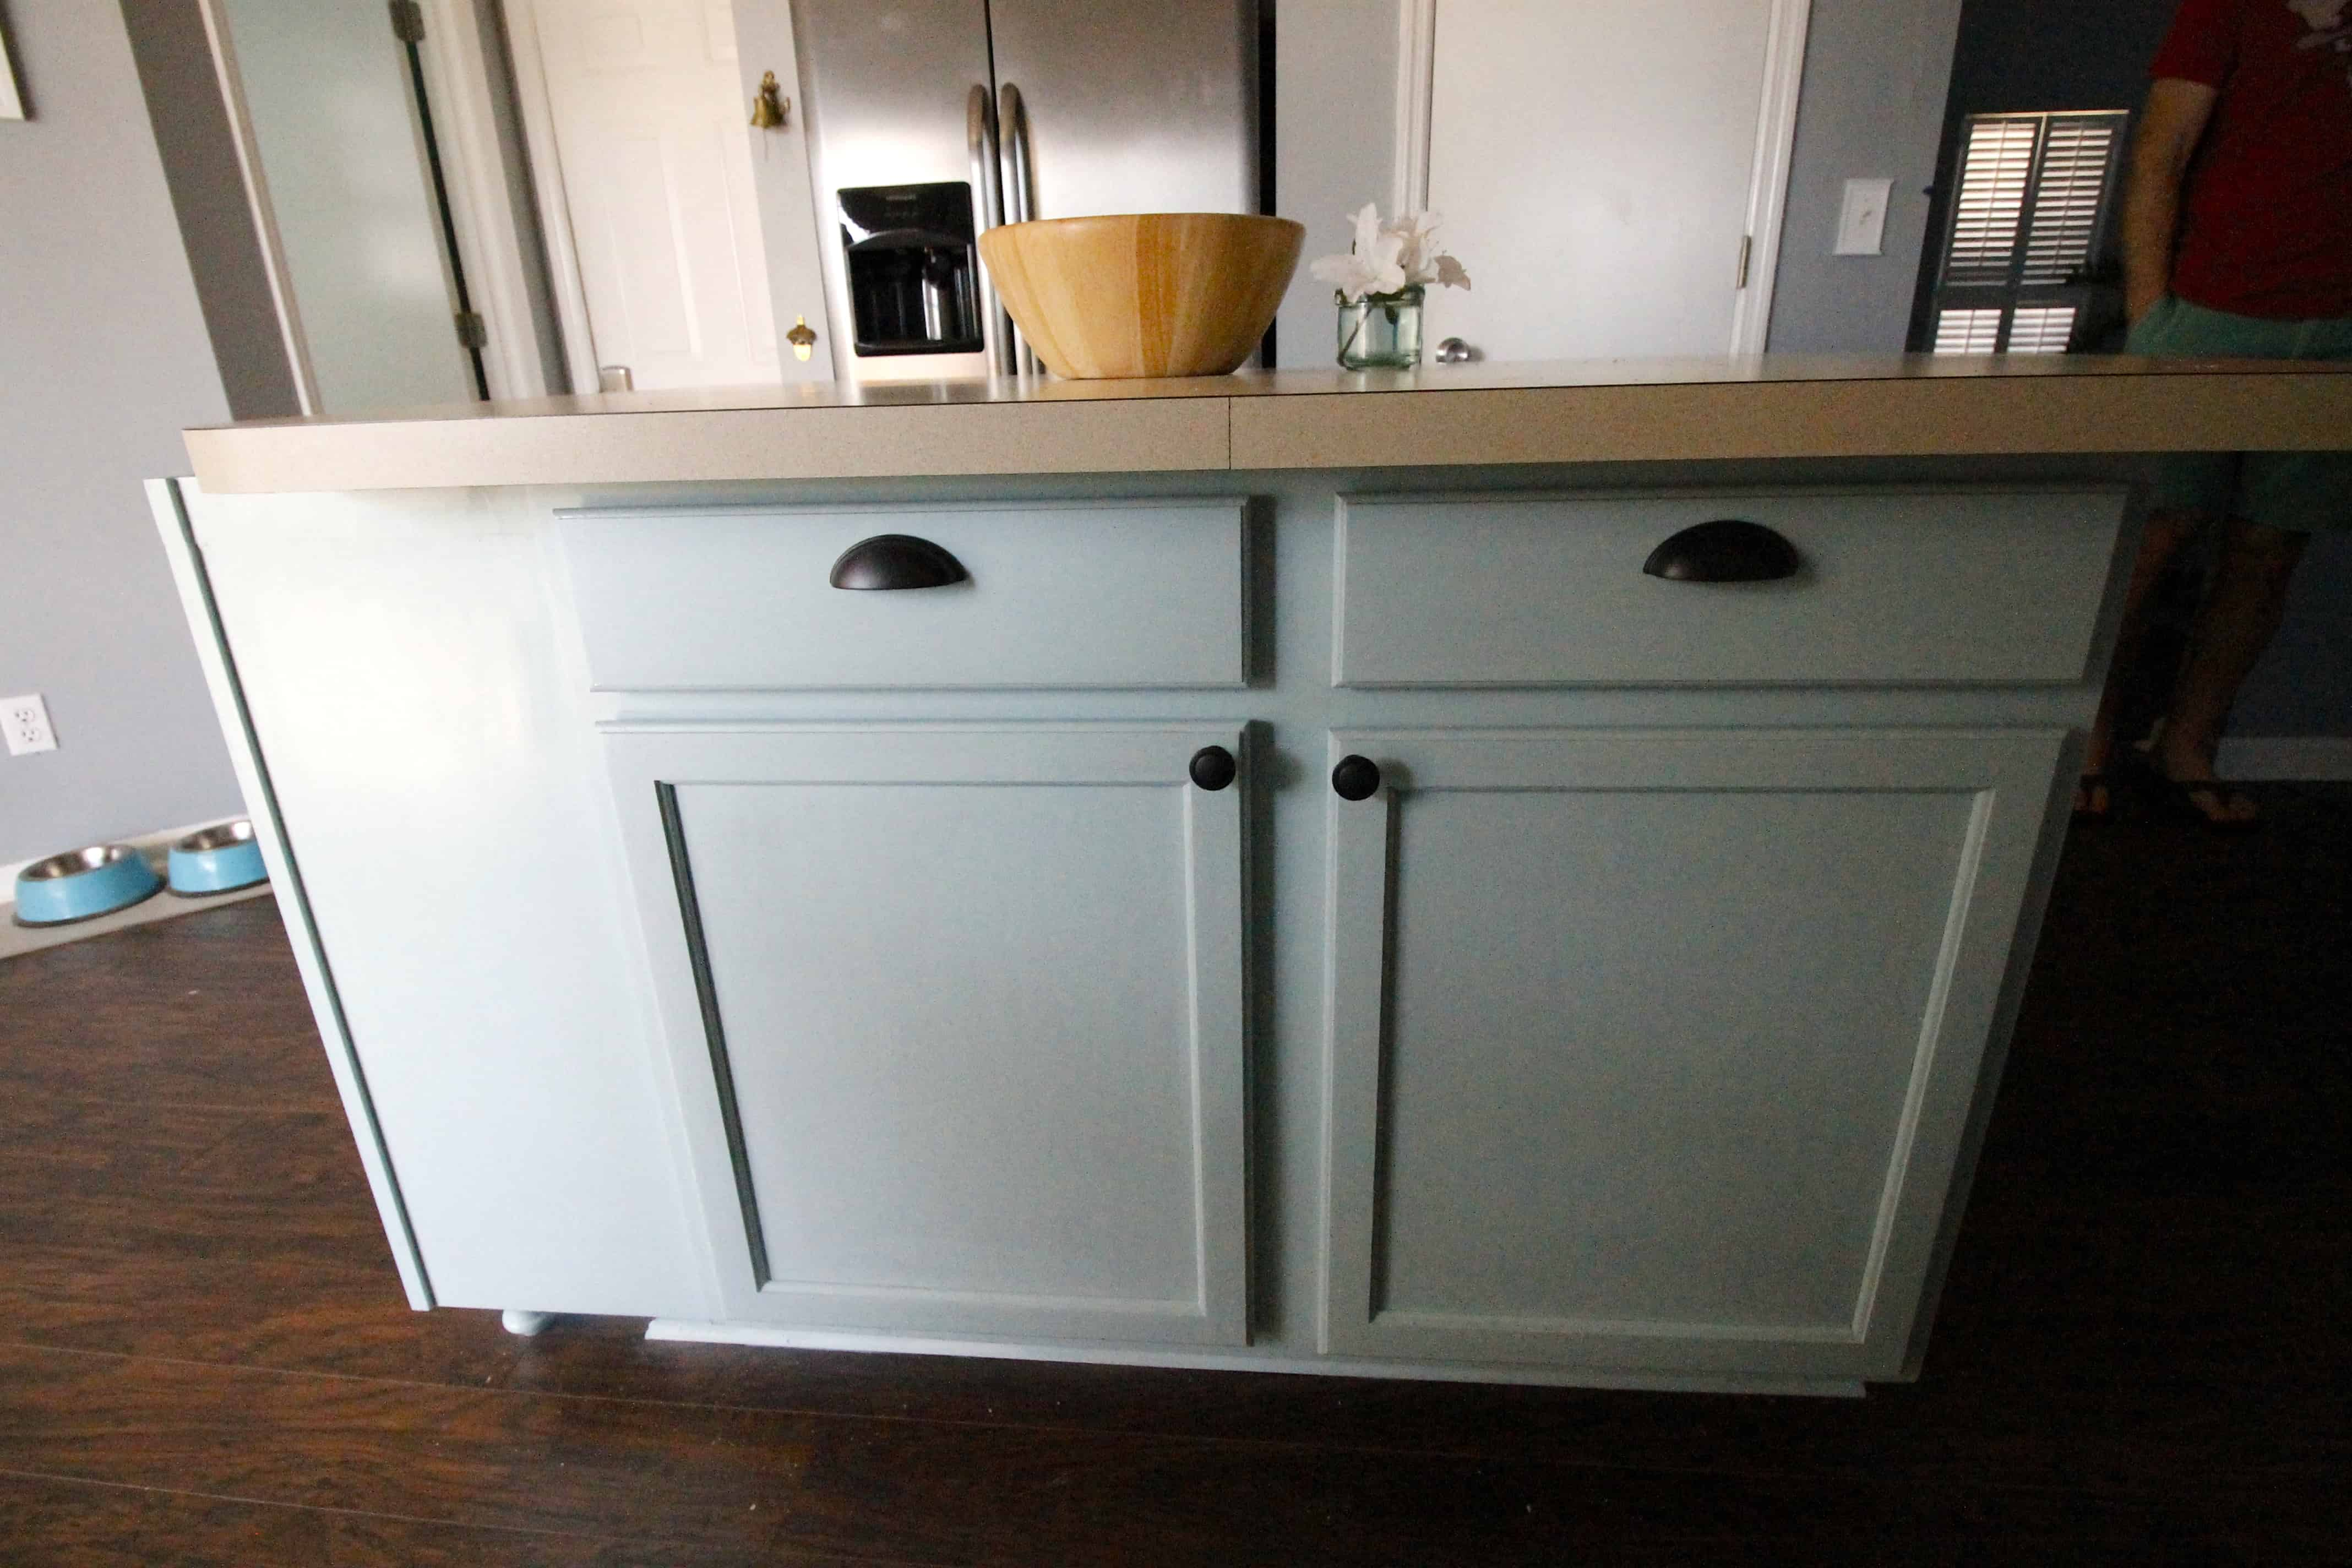 What We Learned Painting Our Kitchen Cabinets